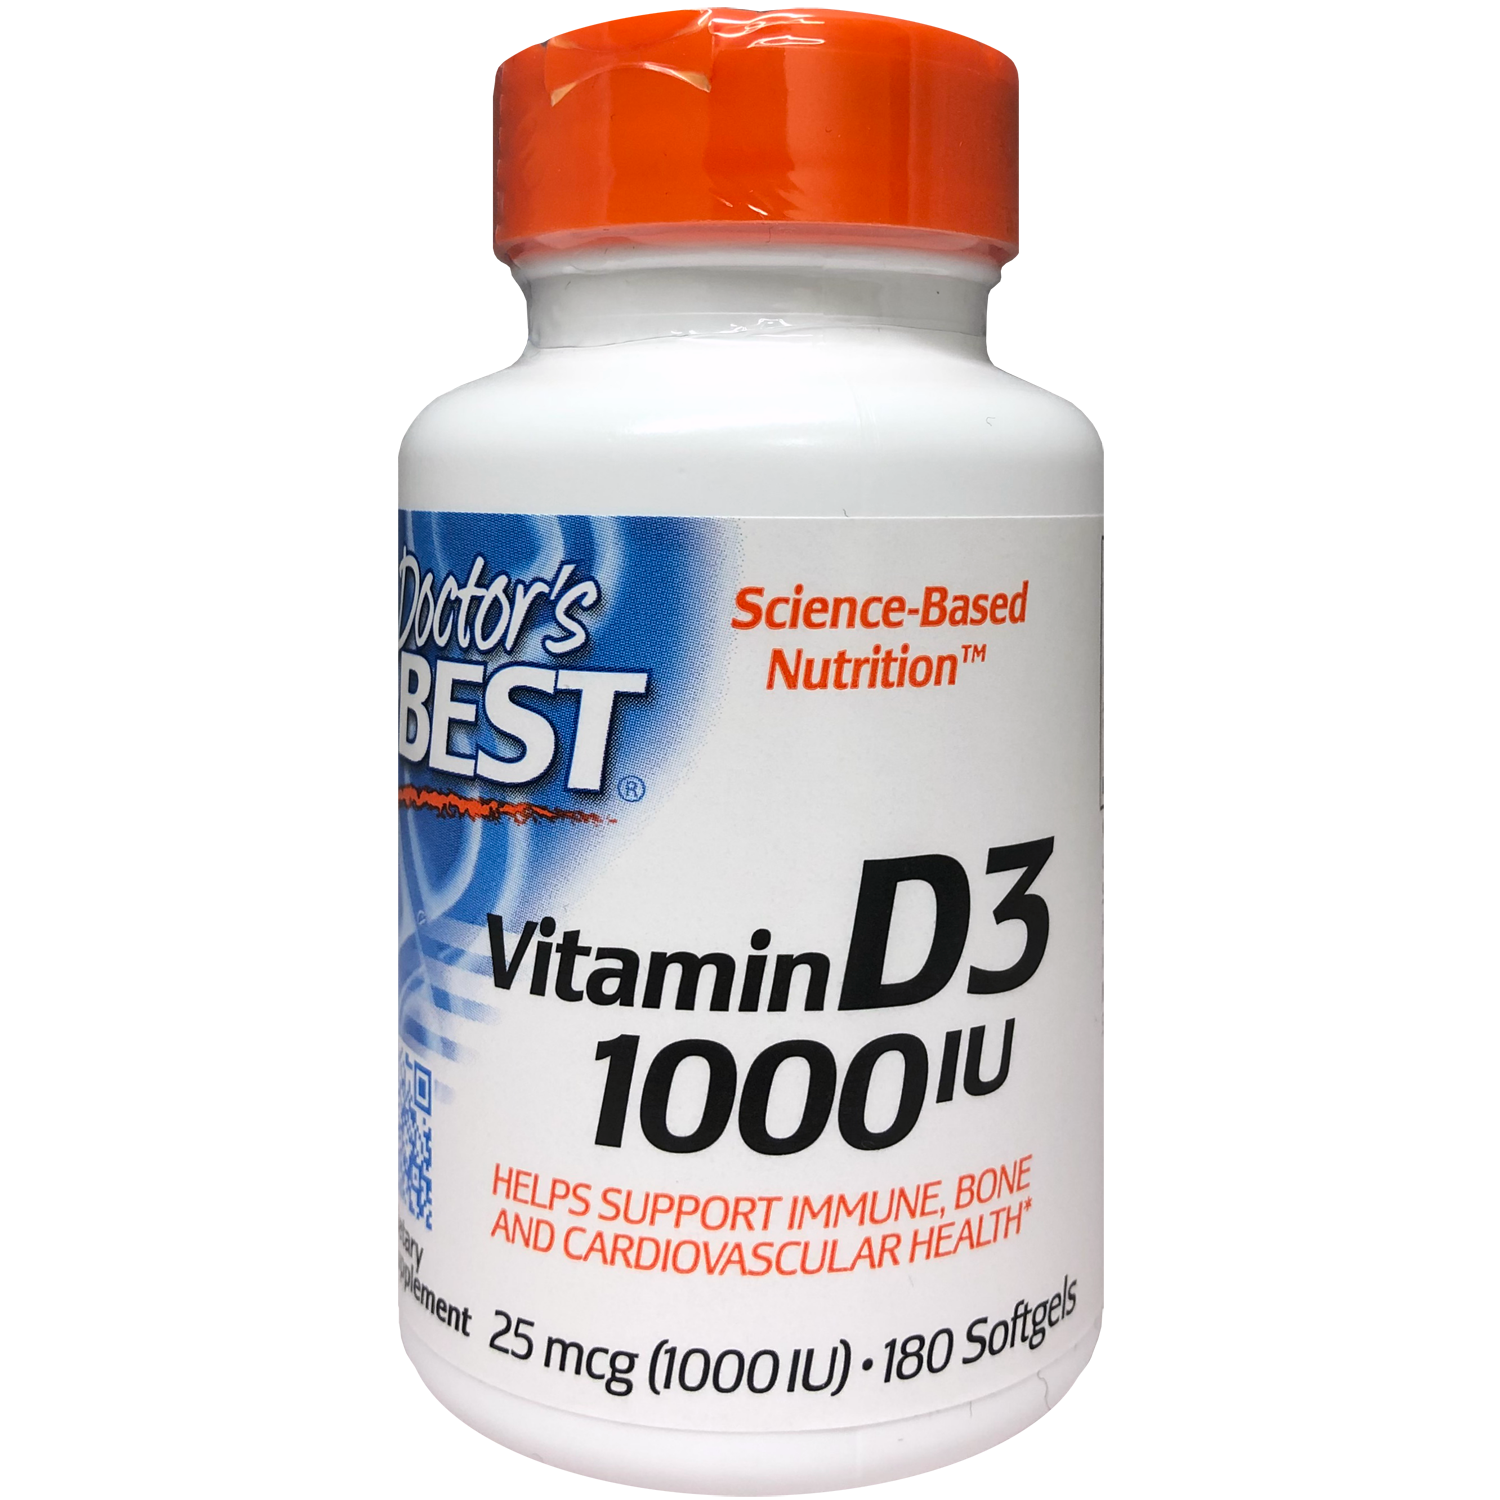 Doctor's Best Vitamin D3 1000IU